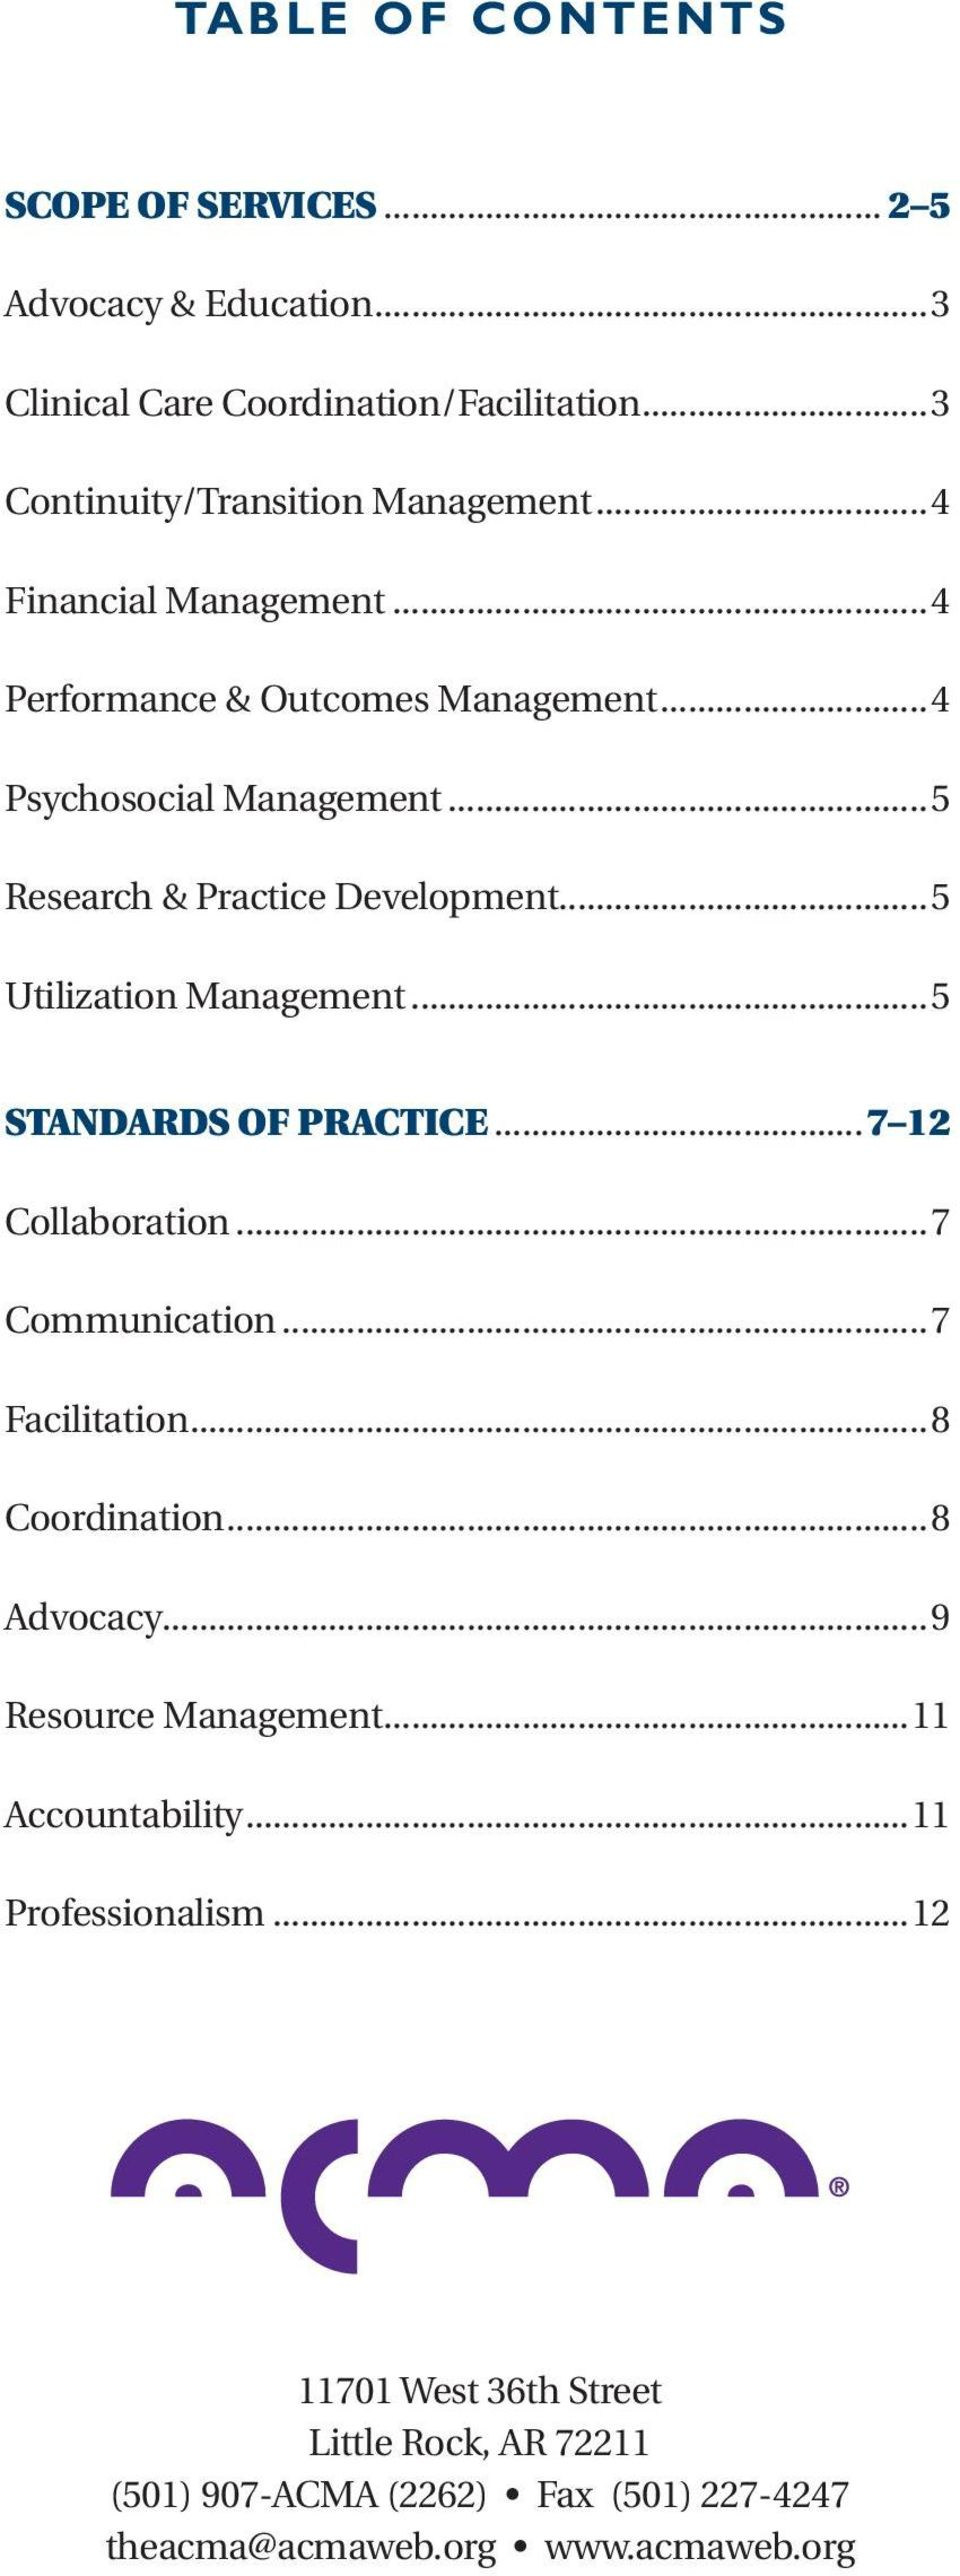 ..5 Utilization Management... 5 STANDARDS OF PRACTICE... 7 12 Collaboration... 7 Communication... 7 Facilitation... 8 Coordination... 8 Advocacy.